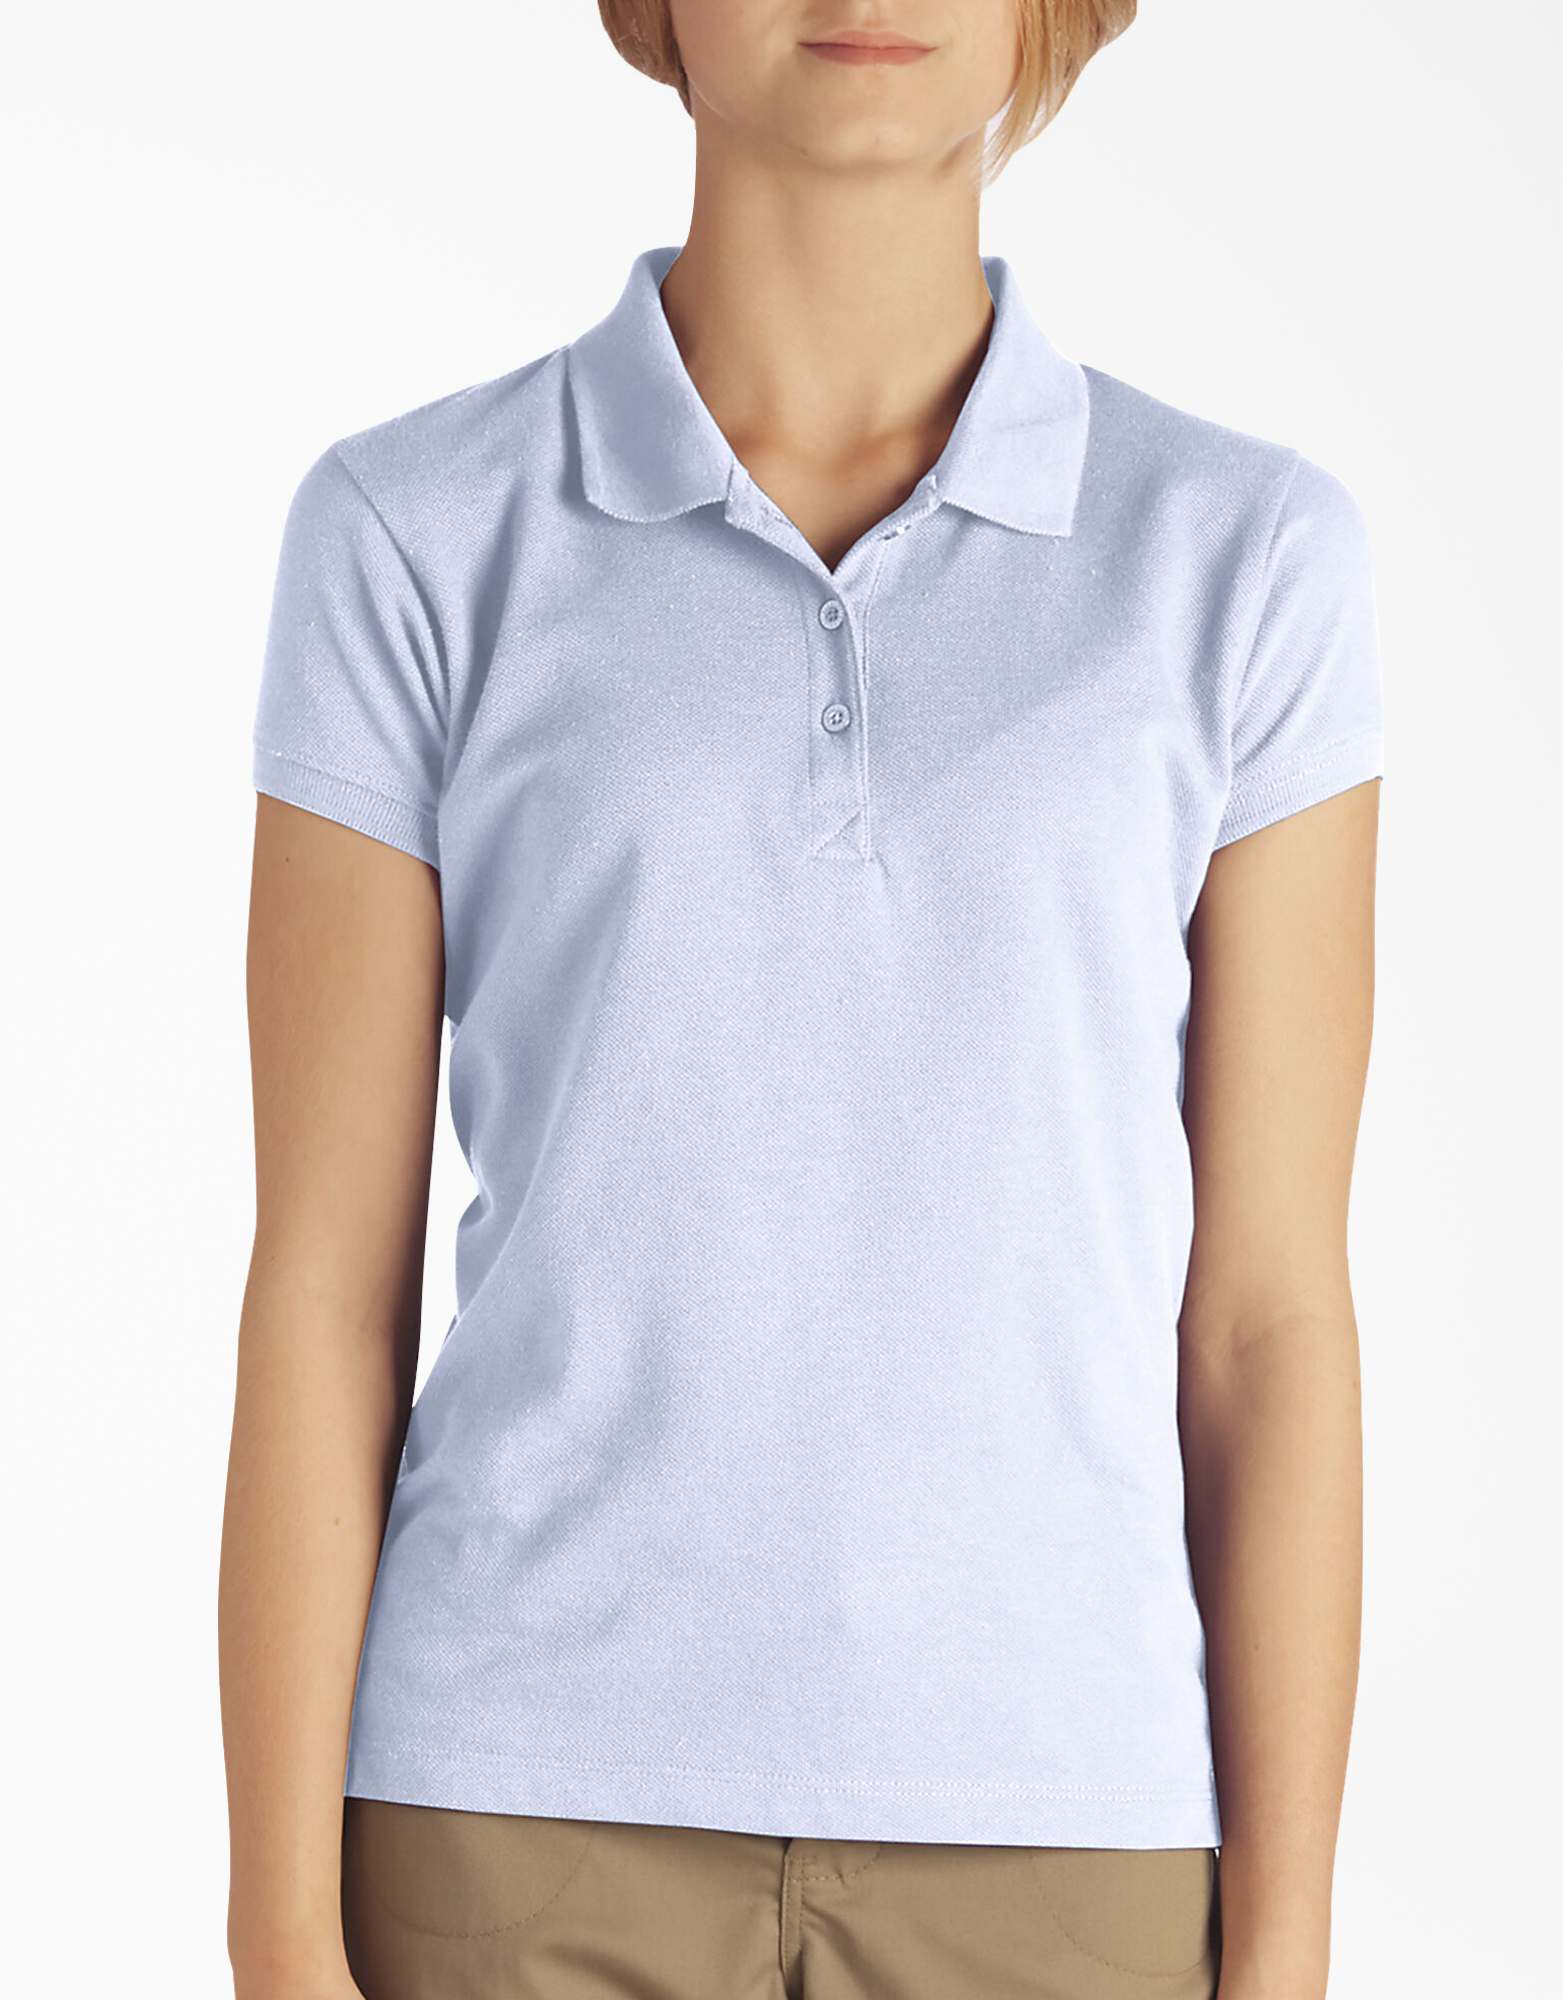 Girls' Short Sleeve Pique Polo Shirt, 4-6 - Light Blue (LB)